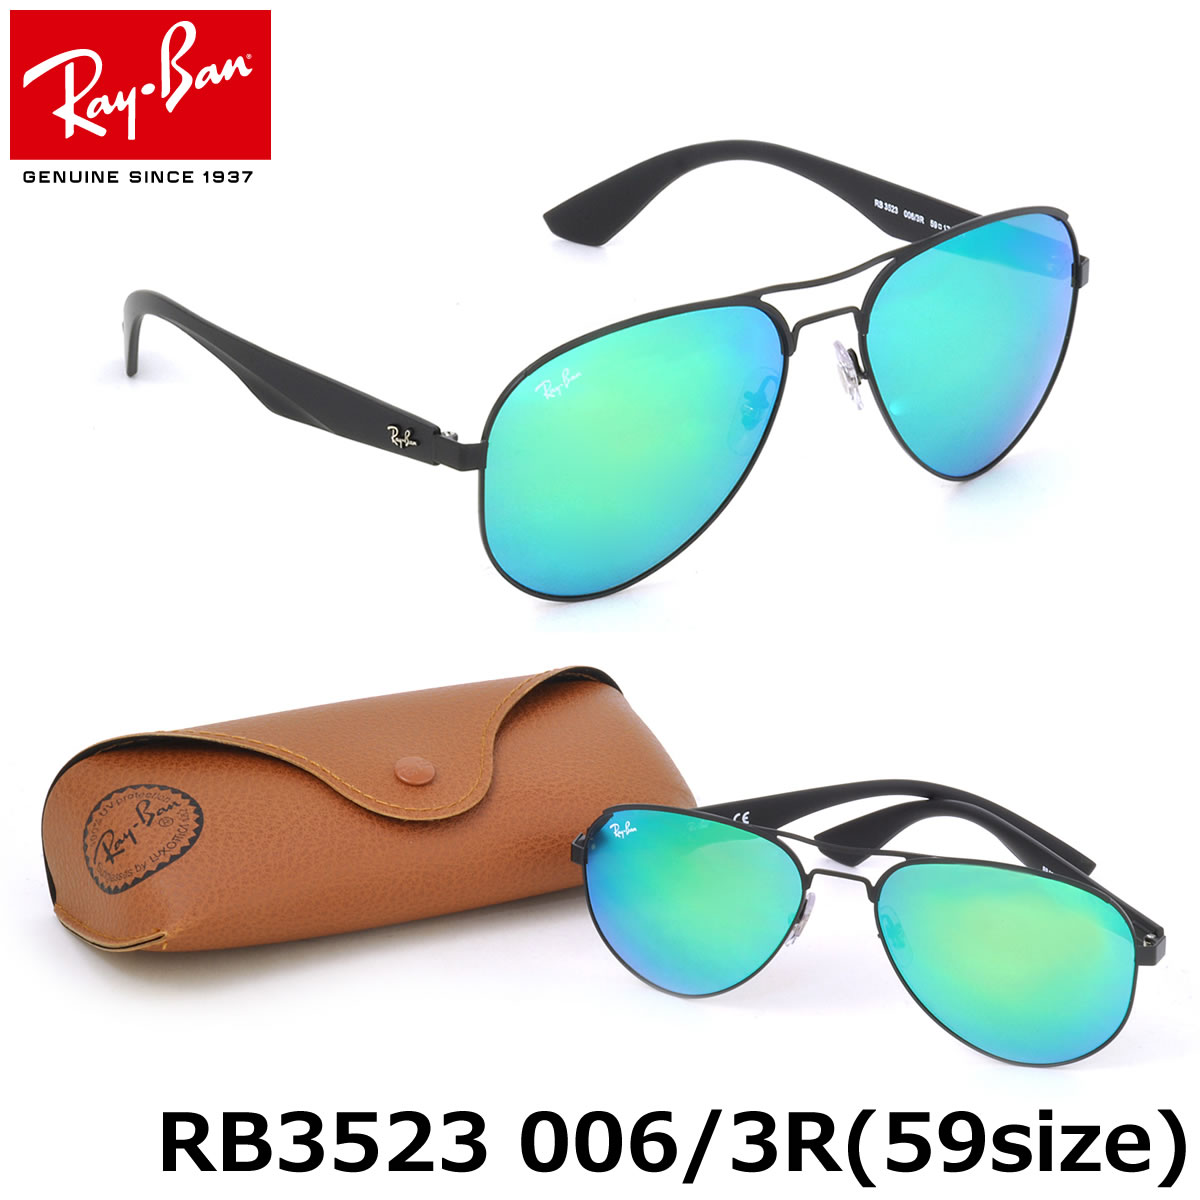 e5419fba9fb65f RB3523 is one of AVIATOR (a biA ter) models that are popular in Ray-Ban  sunglasses. The front department of the frame adopts the light weight  plastic ...